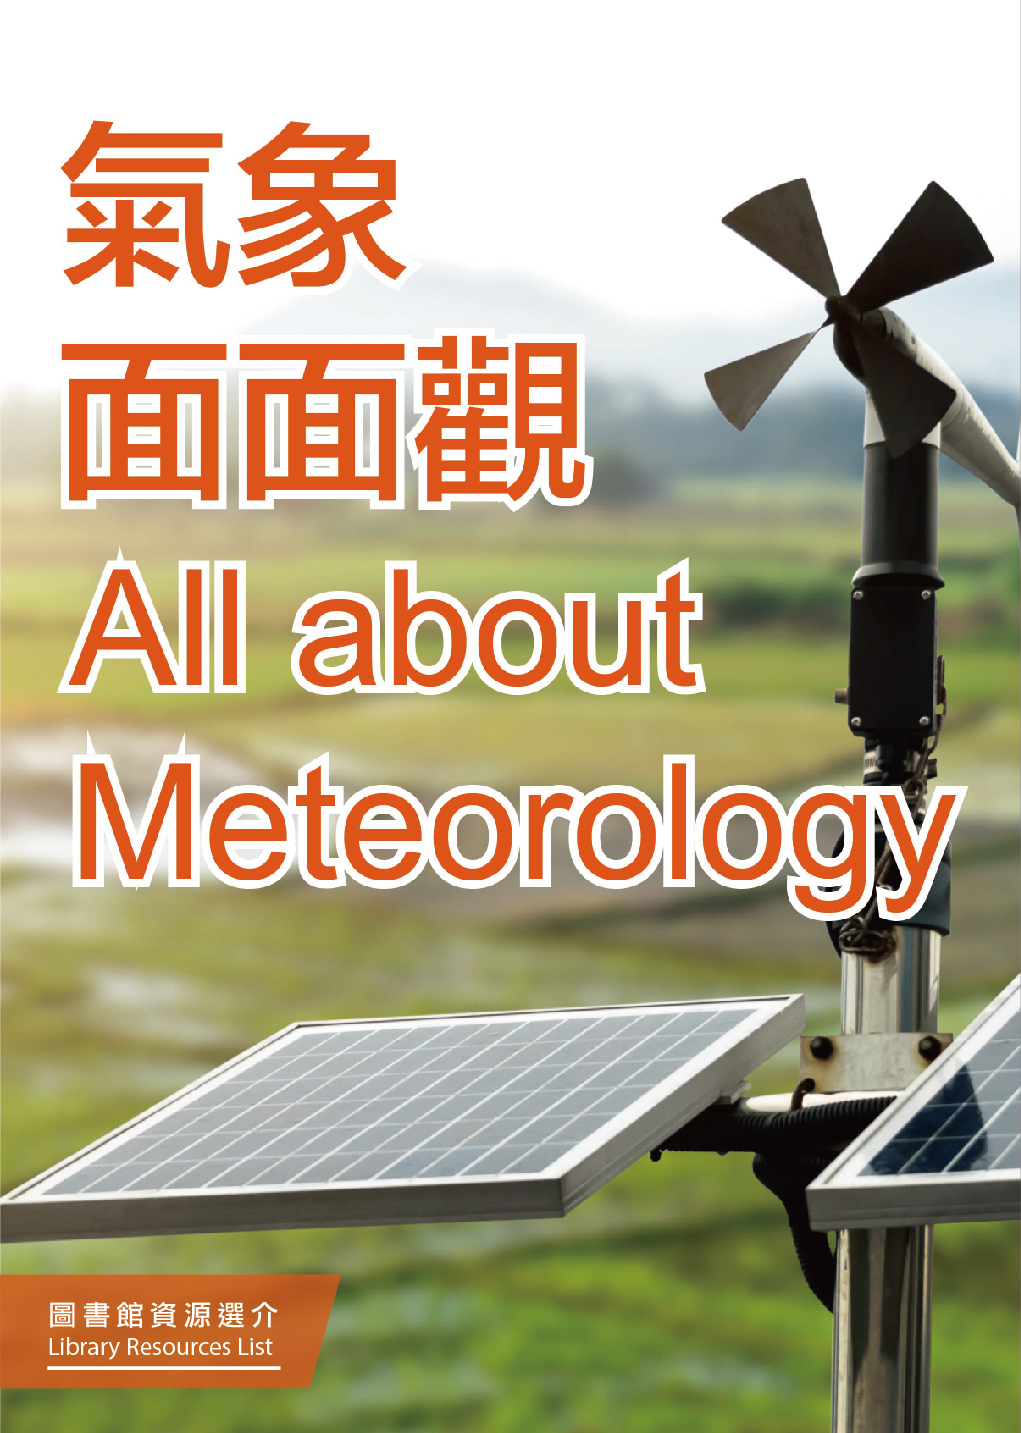 All about Meteorology